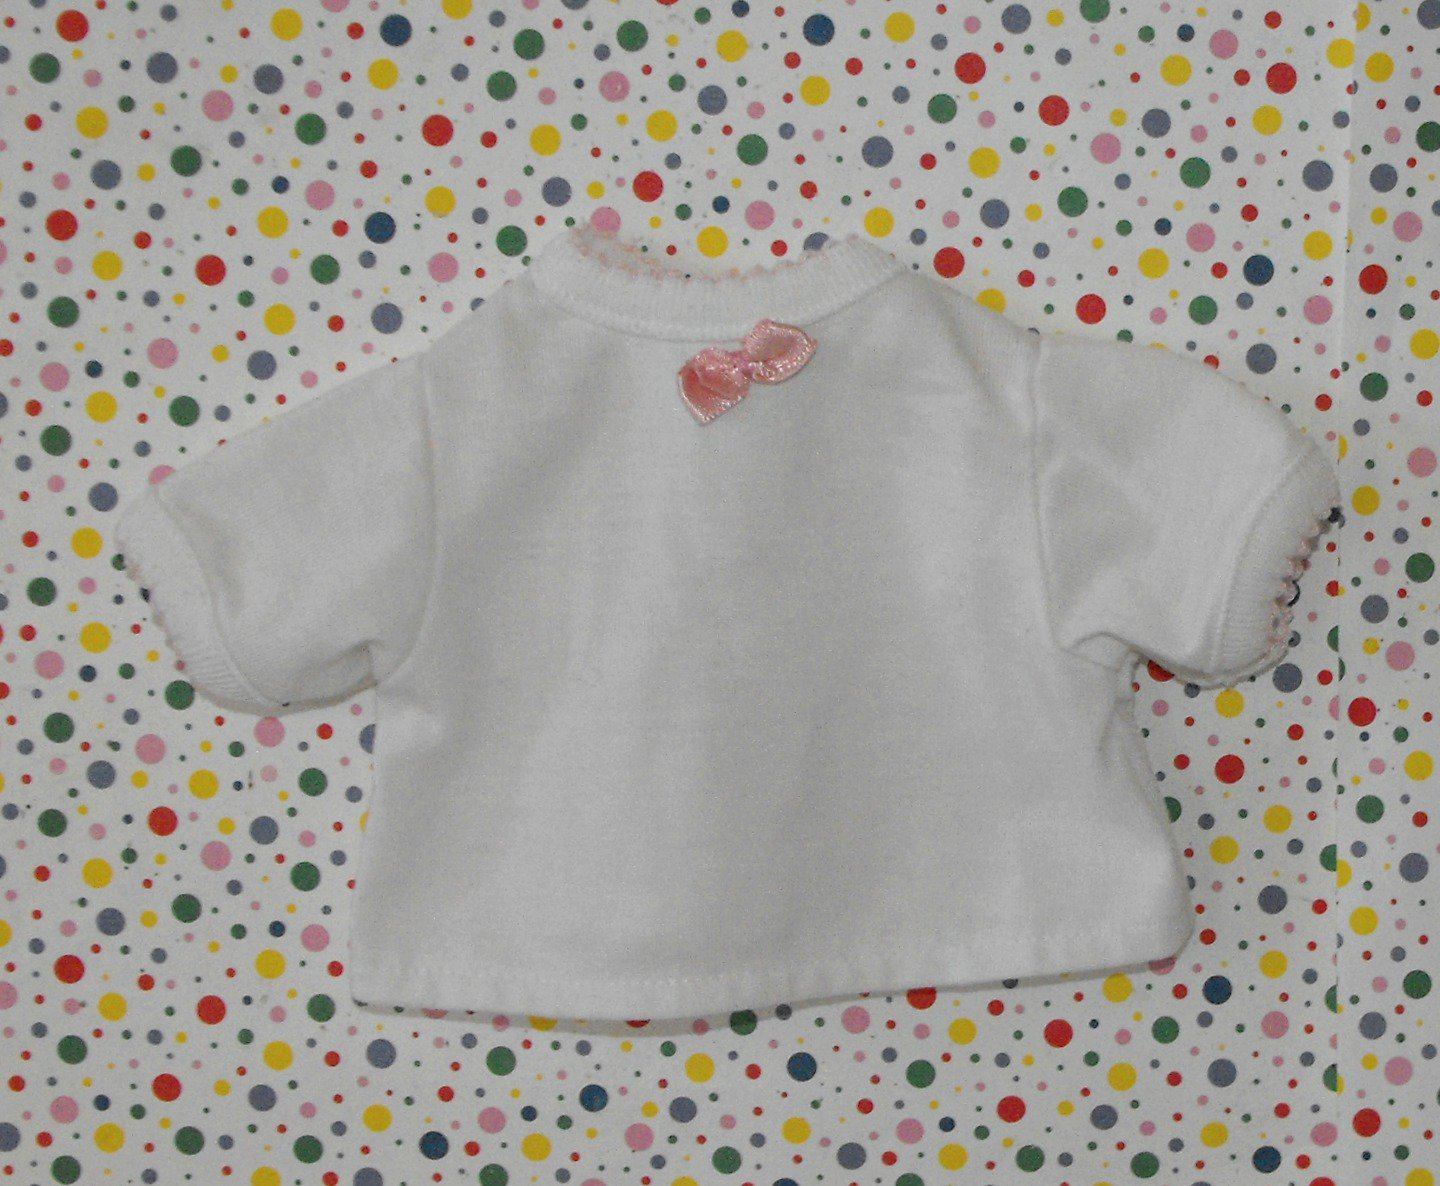 American Girl Bitty Baby Style Doll Shirt Pink Bow